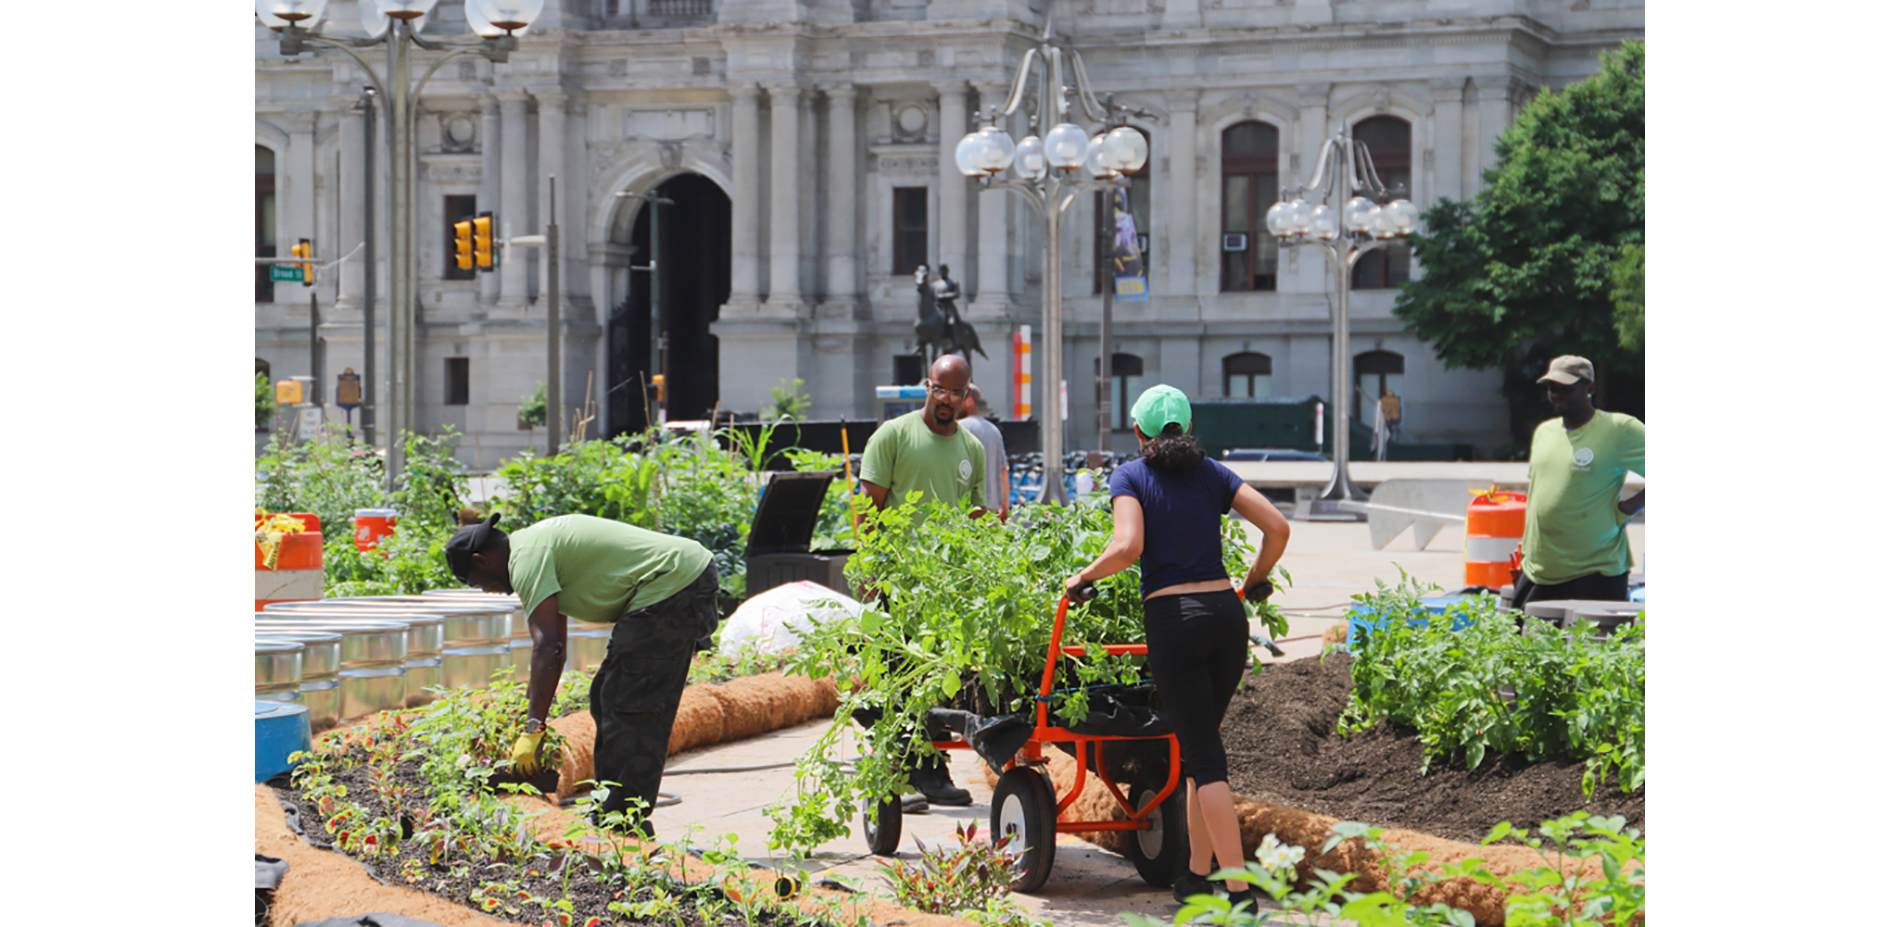 Highlighting Food Insecurity in Philly